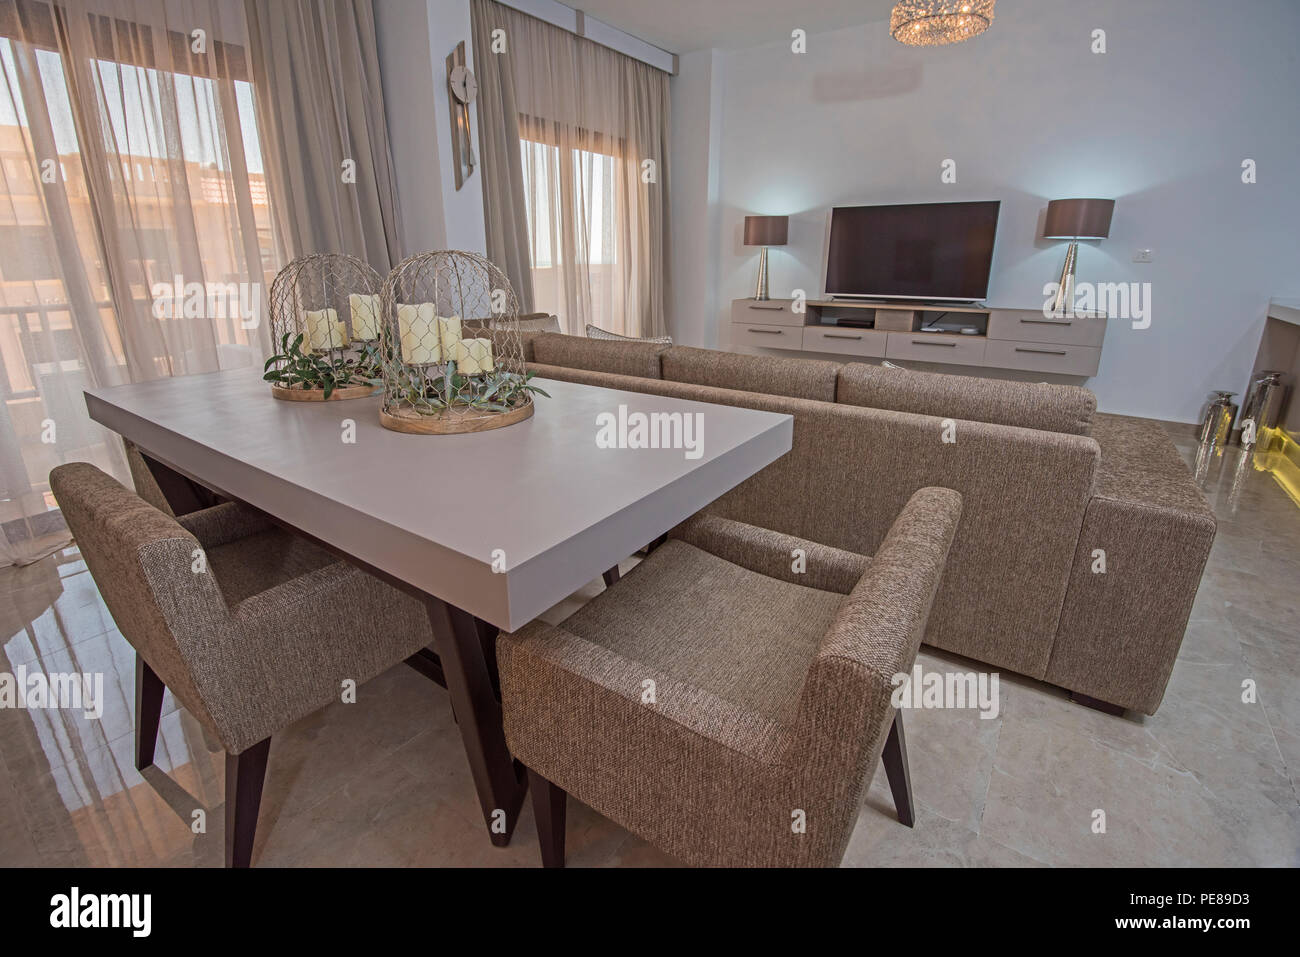 Living Room Lounge With Dining Table In Luxury Apartment Show Home Showing Interior Design Decor Furnishing